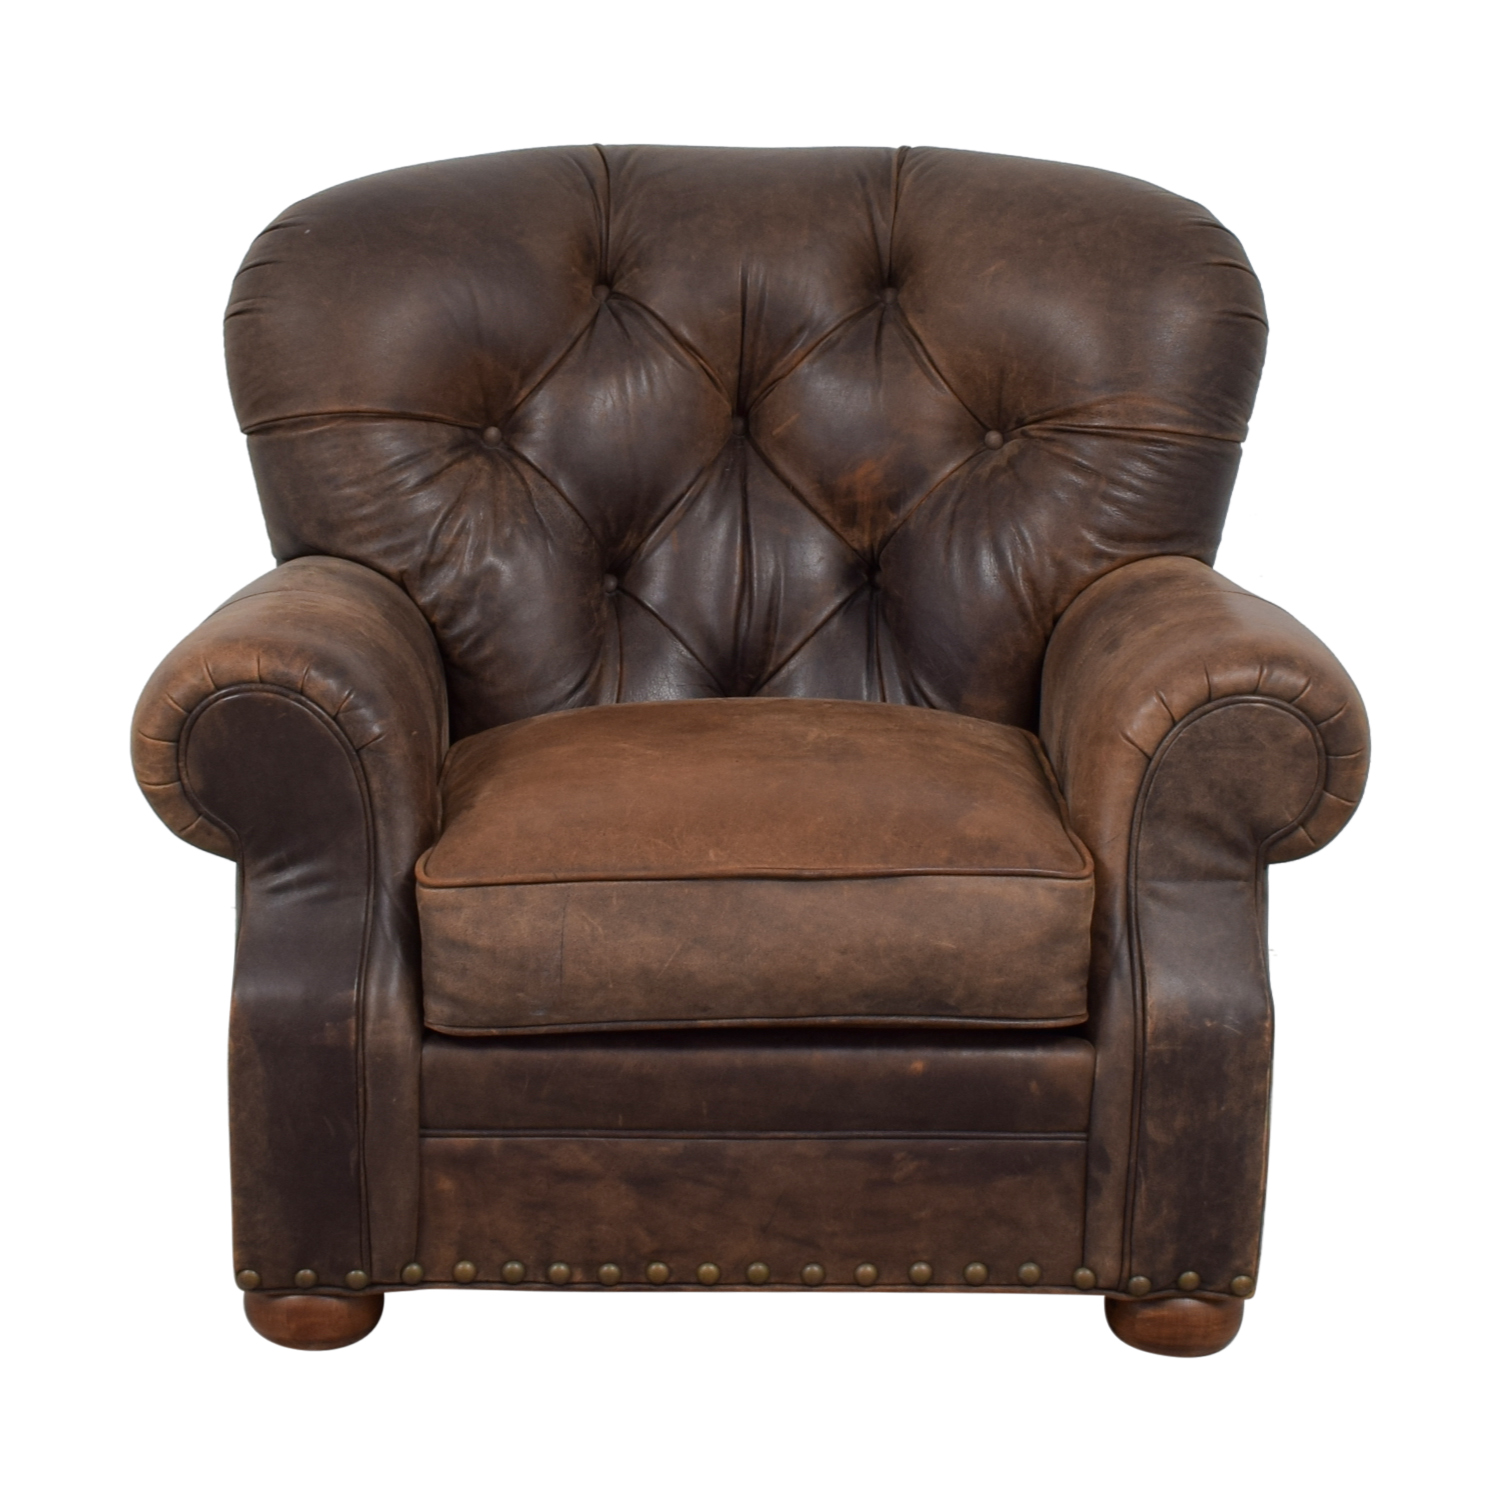 88 Off Restoration Hardware Restoration Hardware Churchill Brown Leather Tufted Nailhead Chair Chairs